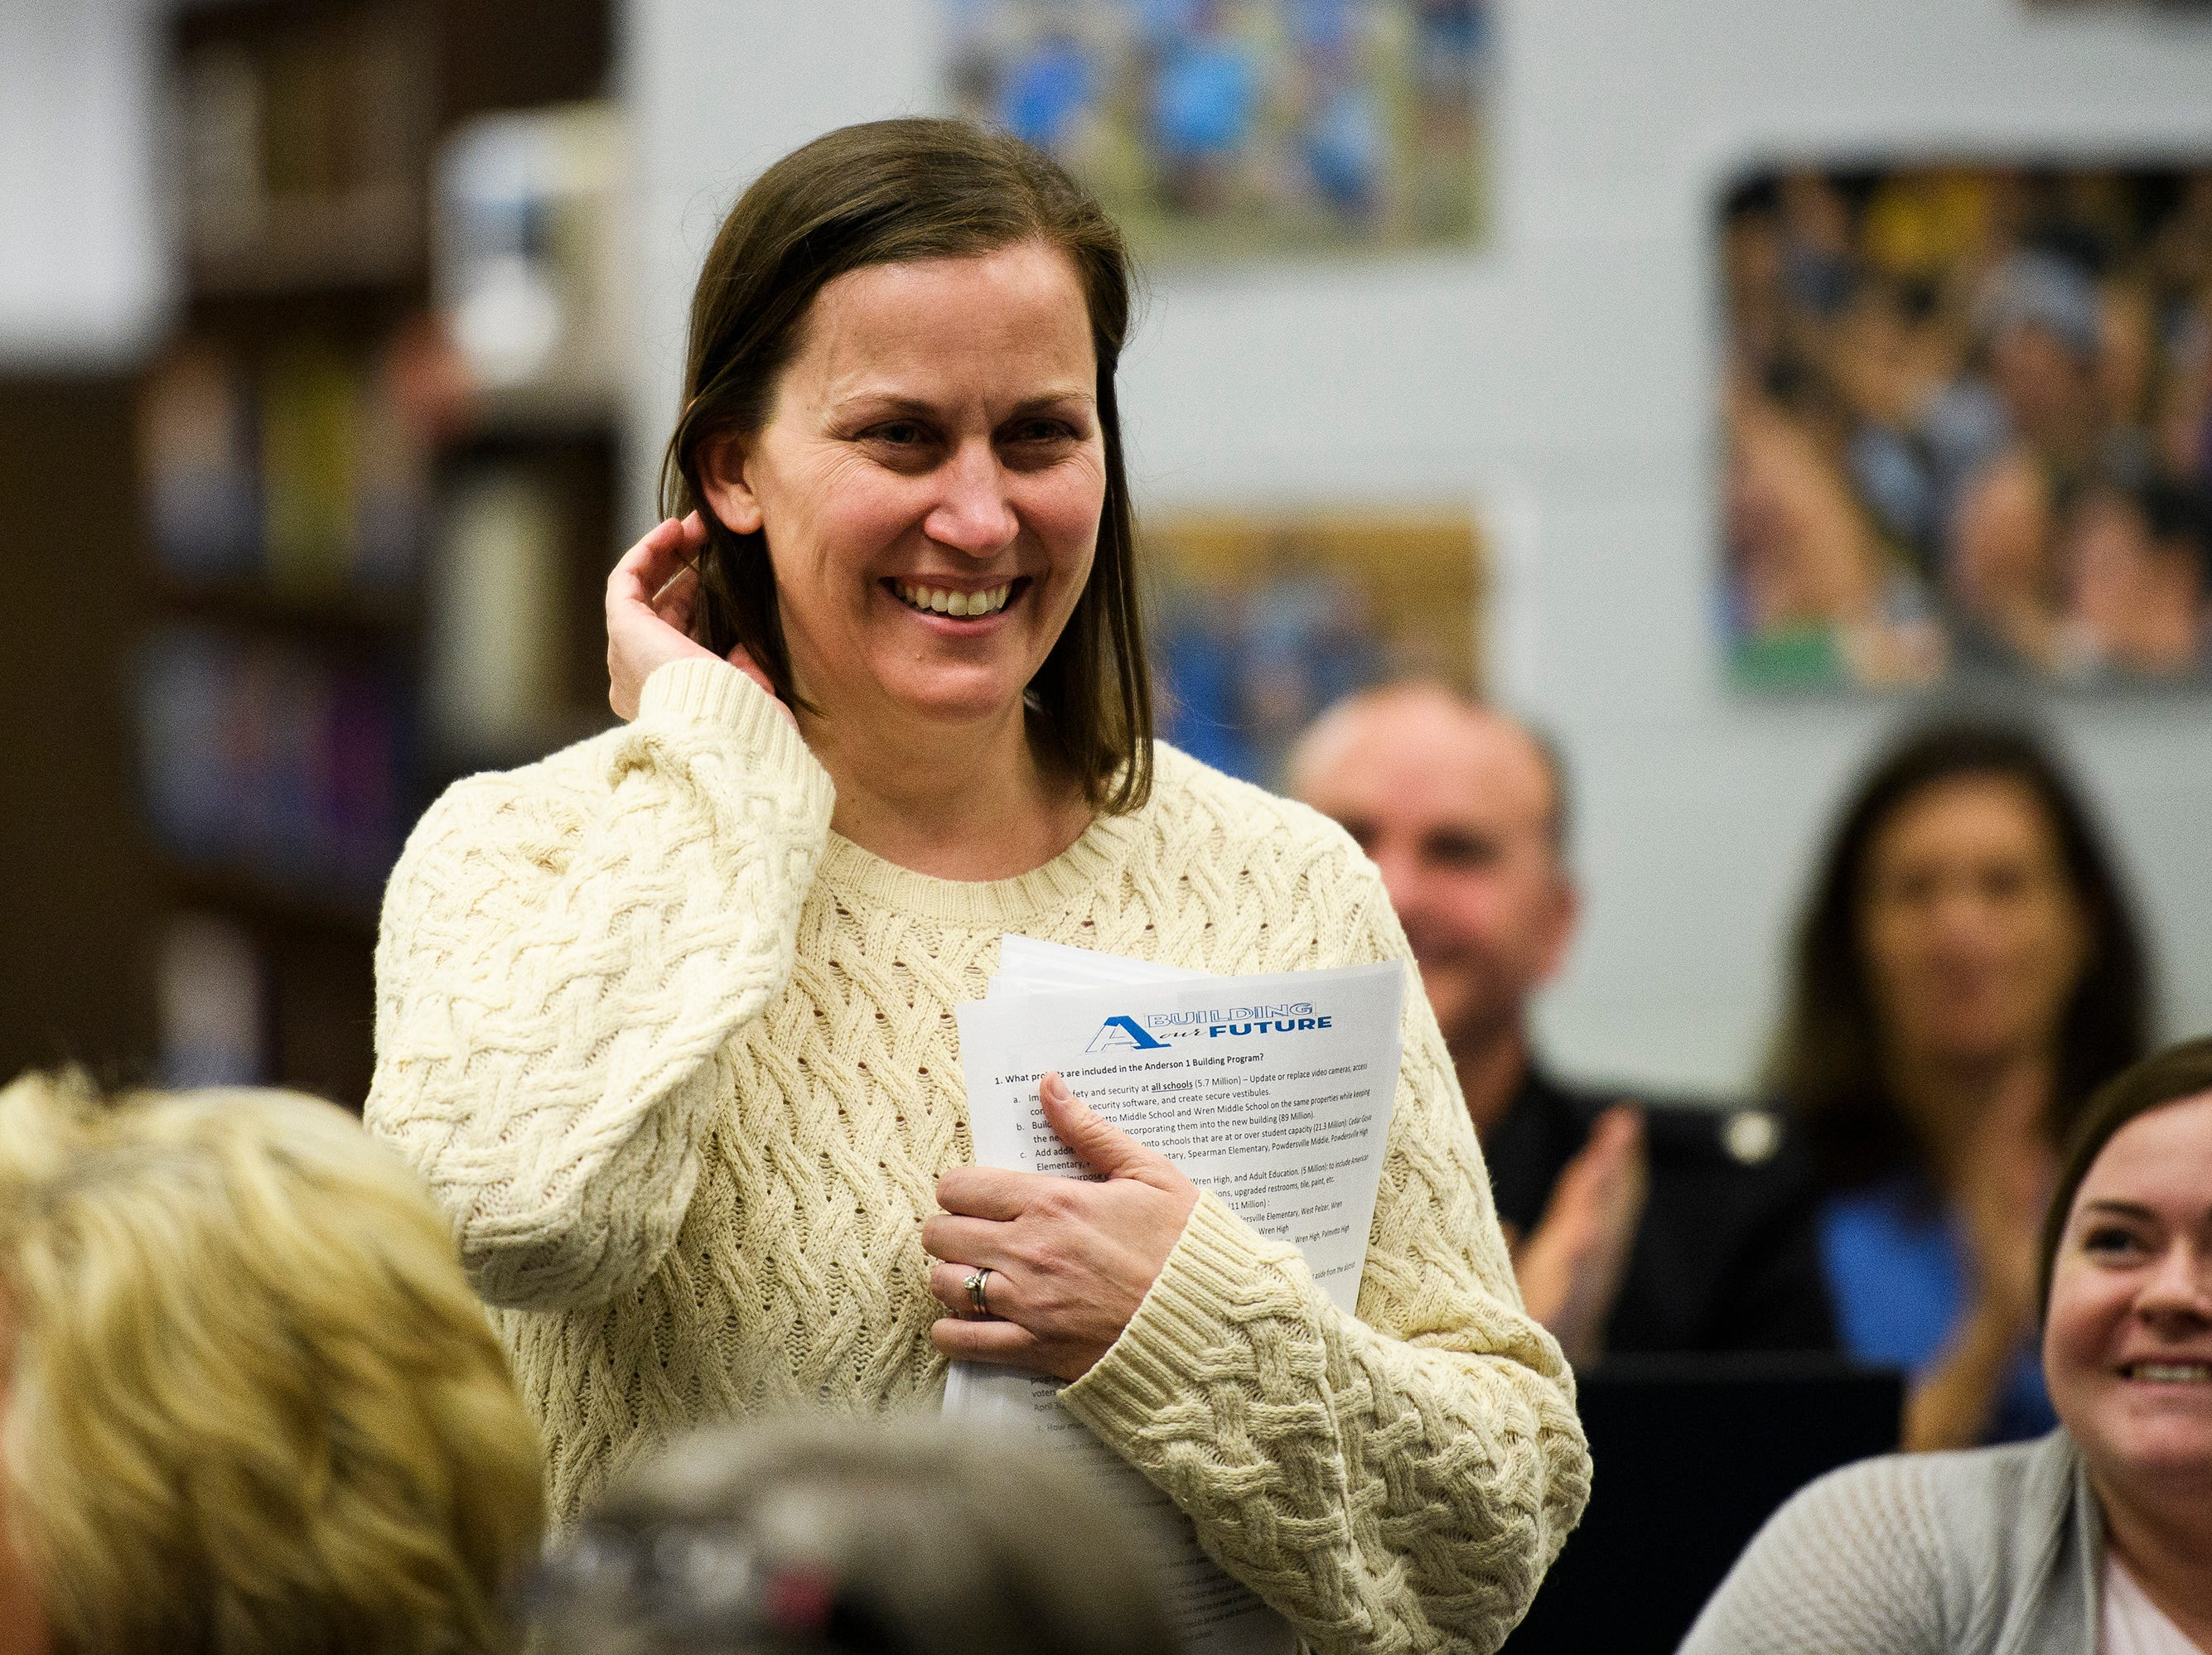 Tamara Cox is named as one of five finalists for South Carolina Teacher of the Year at Wren High School Wednesday, March 13, 2019.